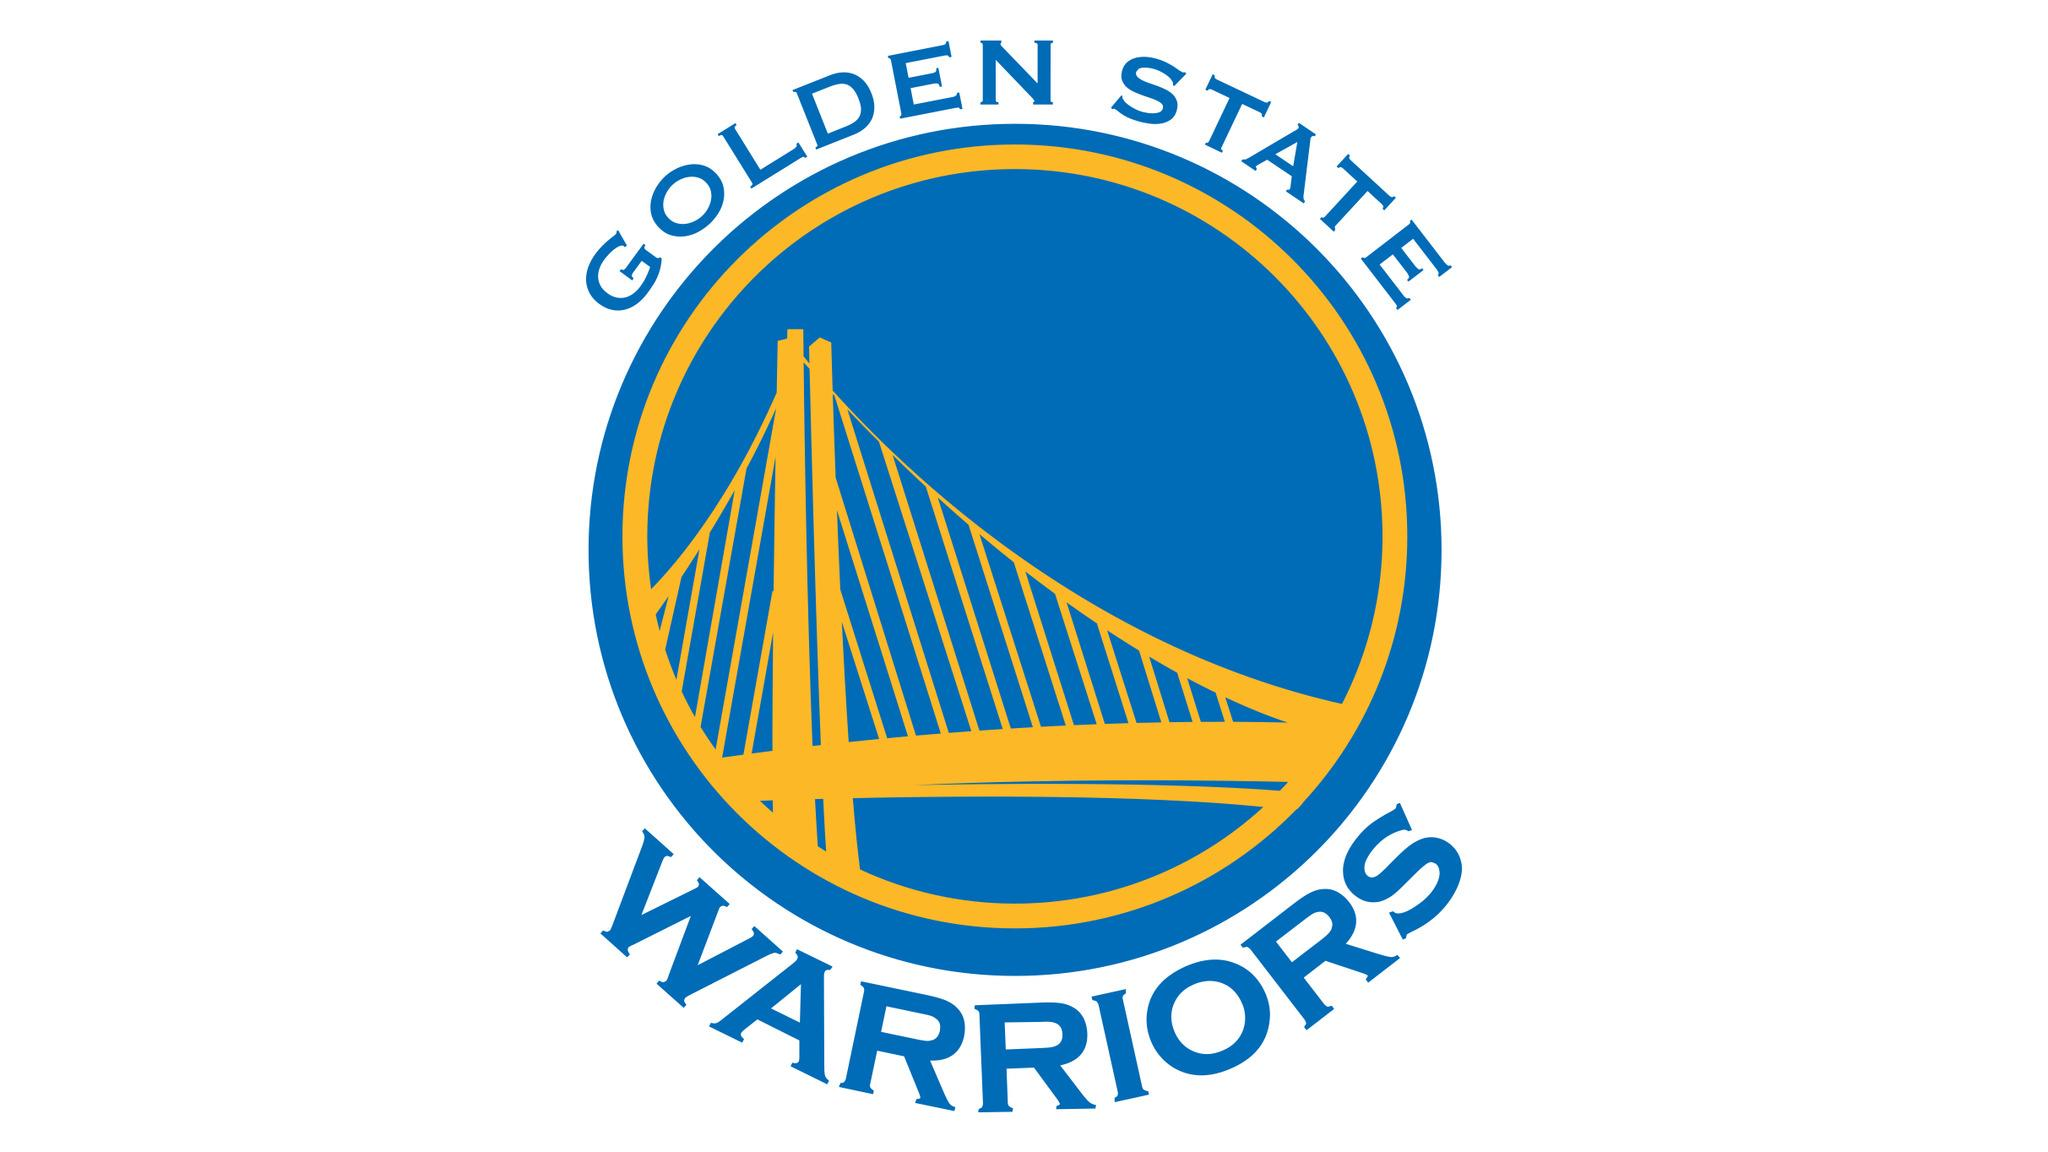 Golden State Warriors vs. Oklahoma City Thunder - Oakland, CA 94621